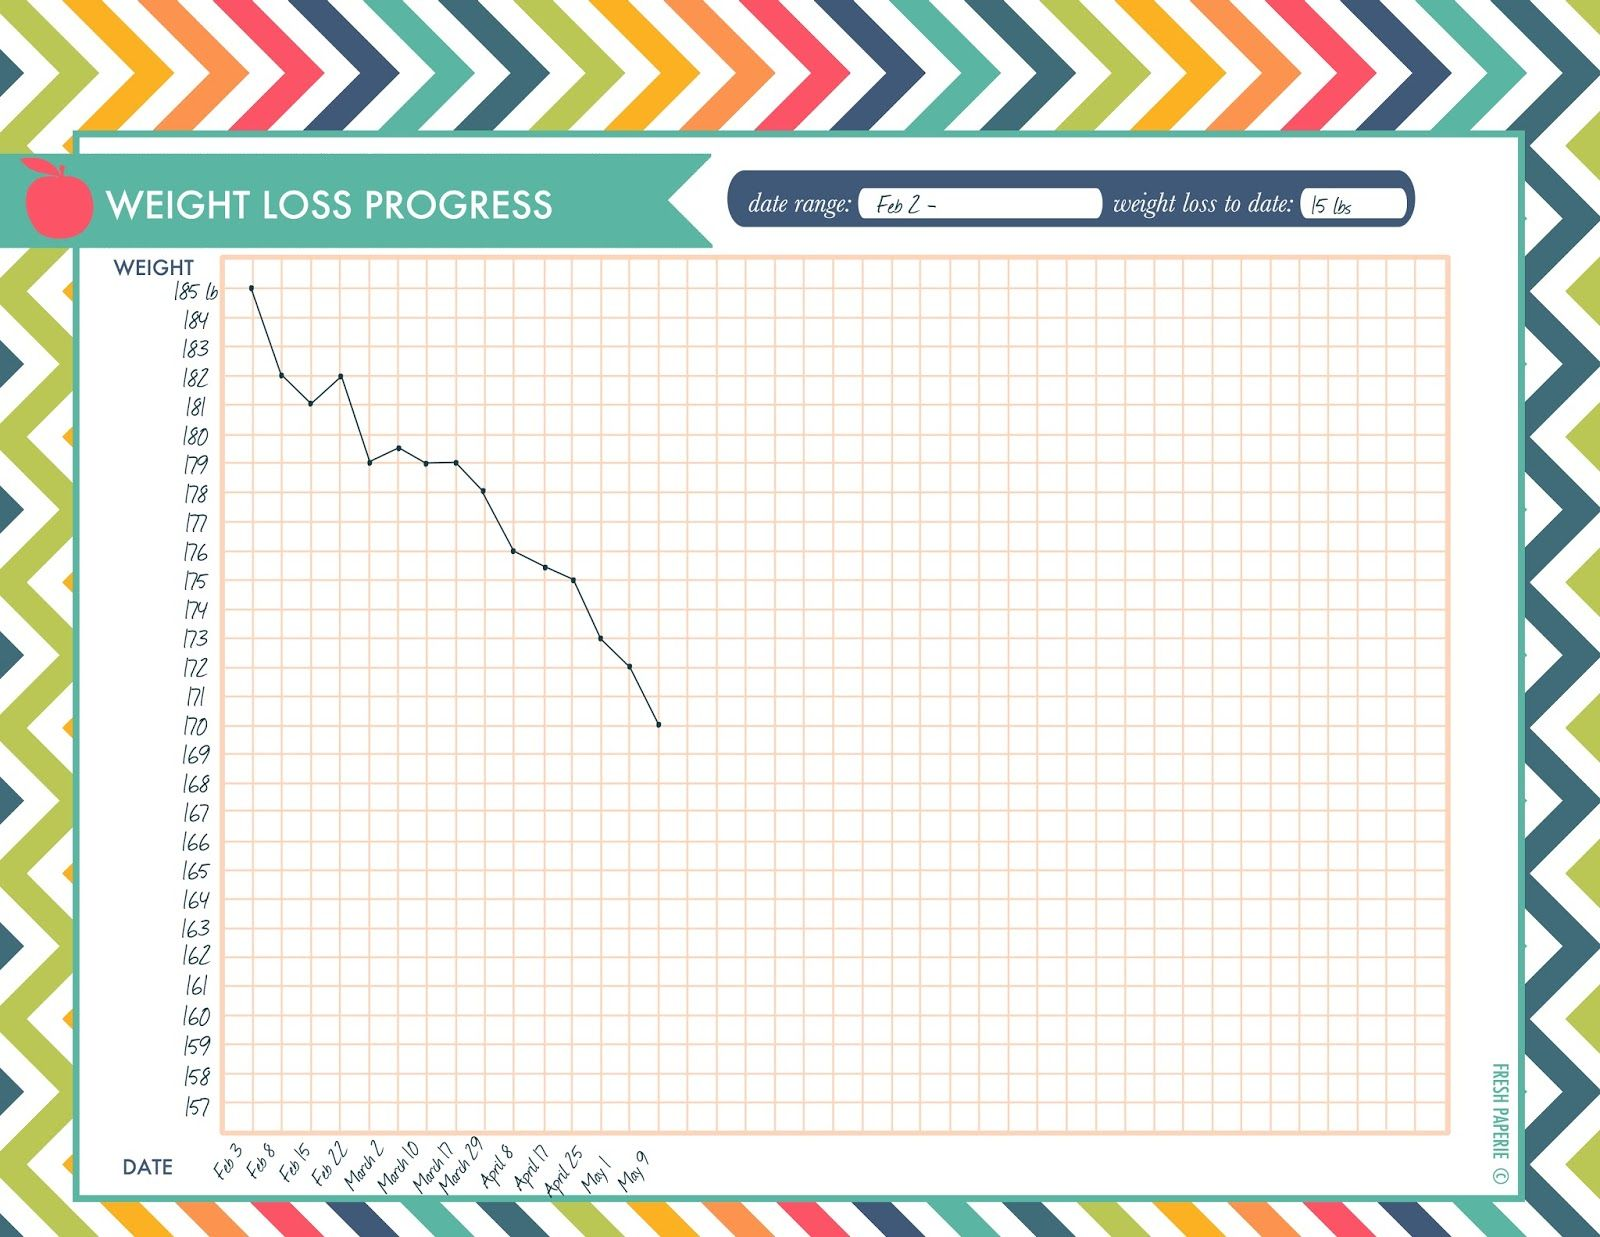 Weight loss progress chart printable download thanks for pinning my printables visit me at also best free and exercise trackers images in rh pinterest